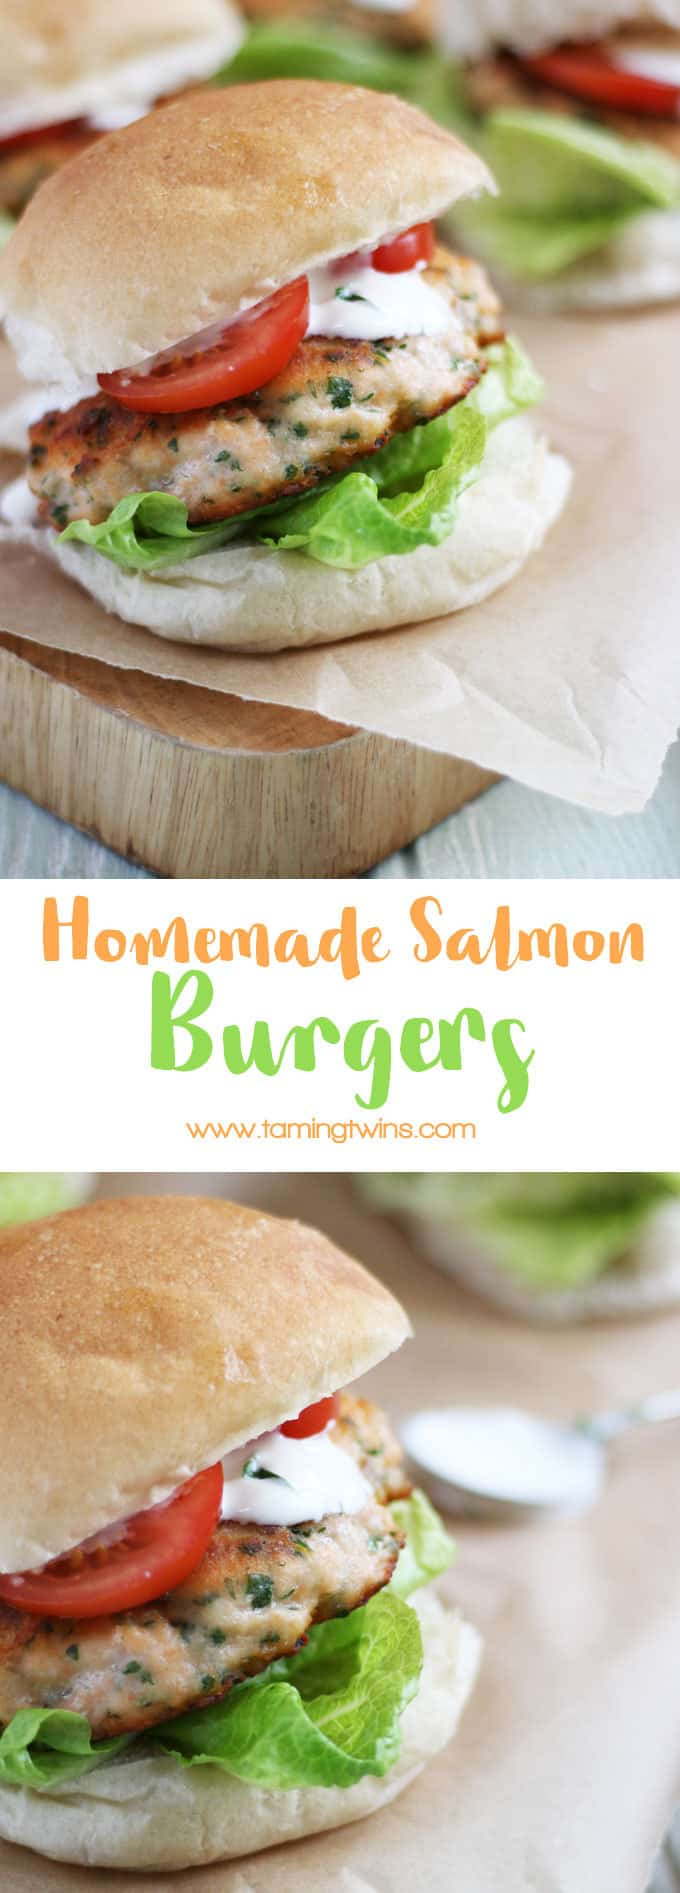 Easy homemade fresh salmon burgers. Delicious burgers, with a hint of curry flavour, a fantastic midweek meal.